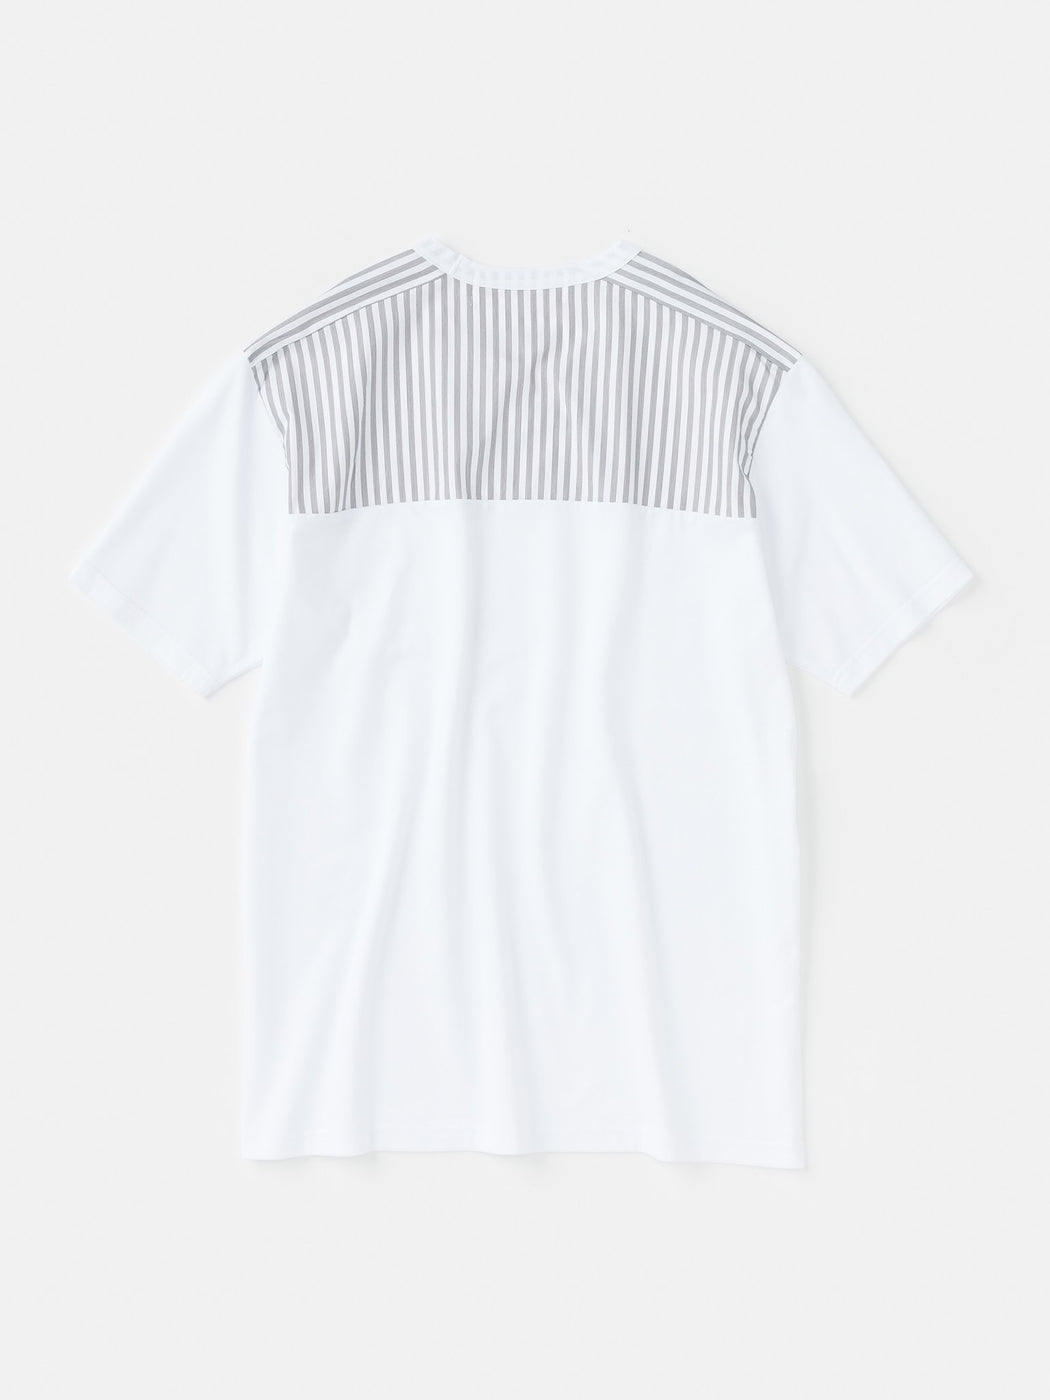 ALOYE Shirt Fabrics Short Sleeve T-shirt White-Gray Stripe